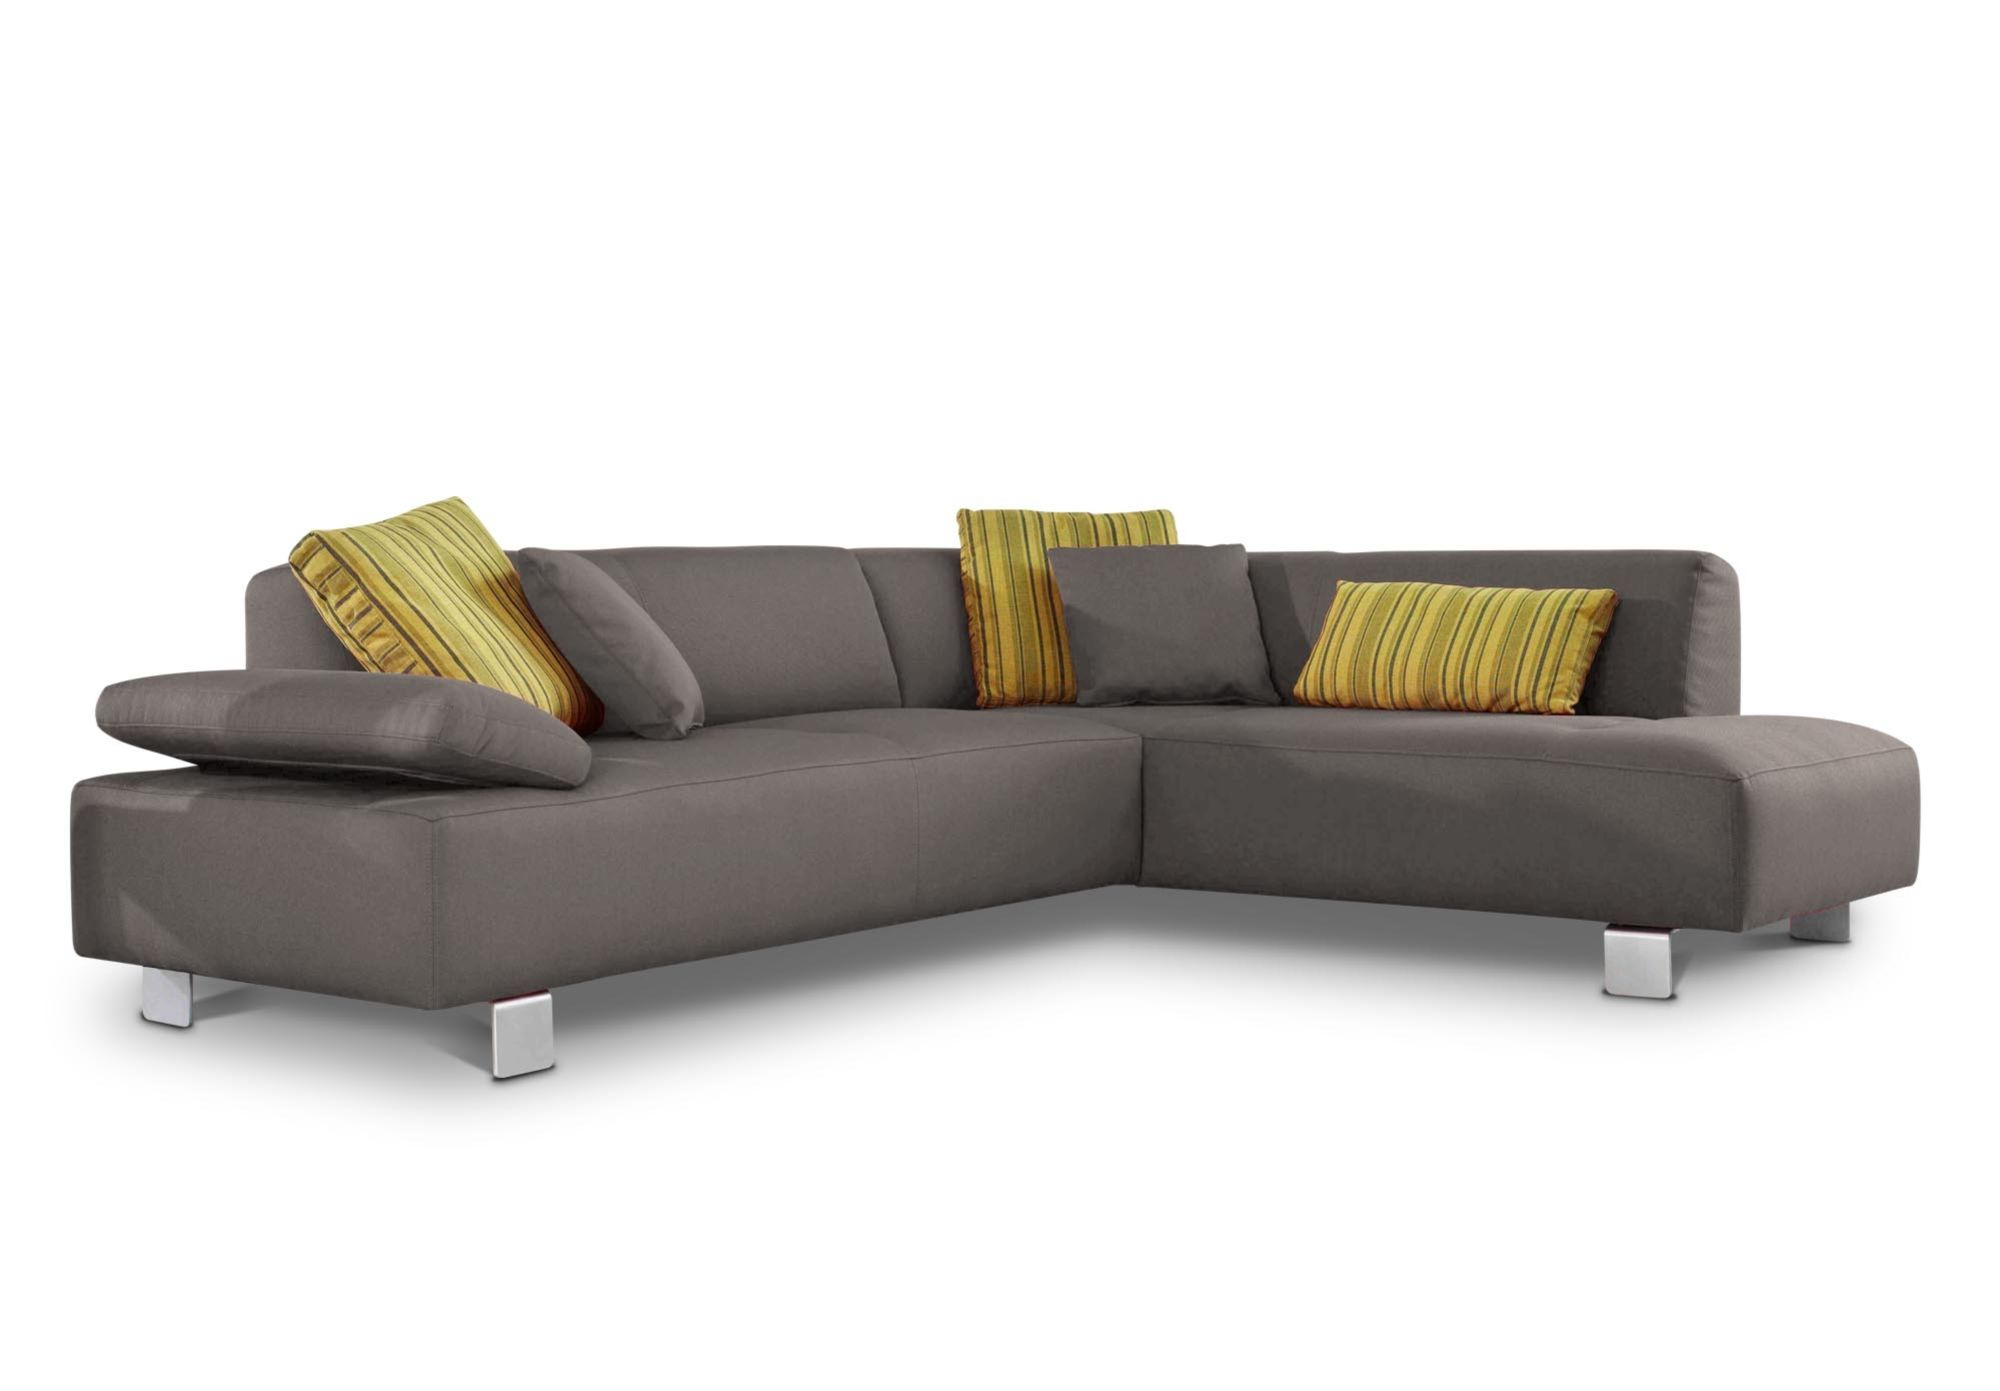 Ordinaire RHF Corner Chaise Sofa   Roxy   Sofa Sets | Corner Sofas | Leather Sofas    Furniture Village